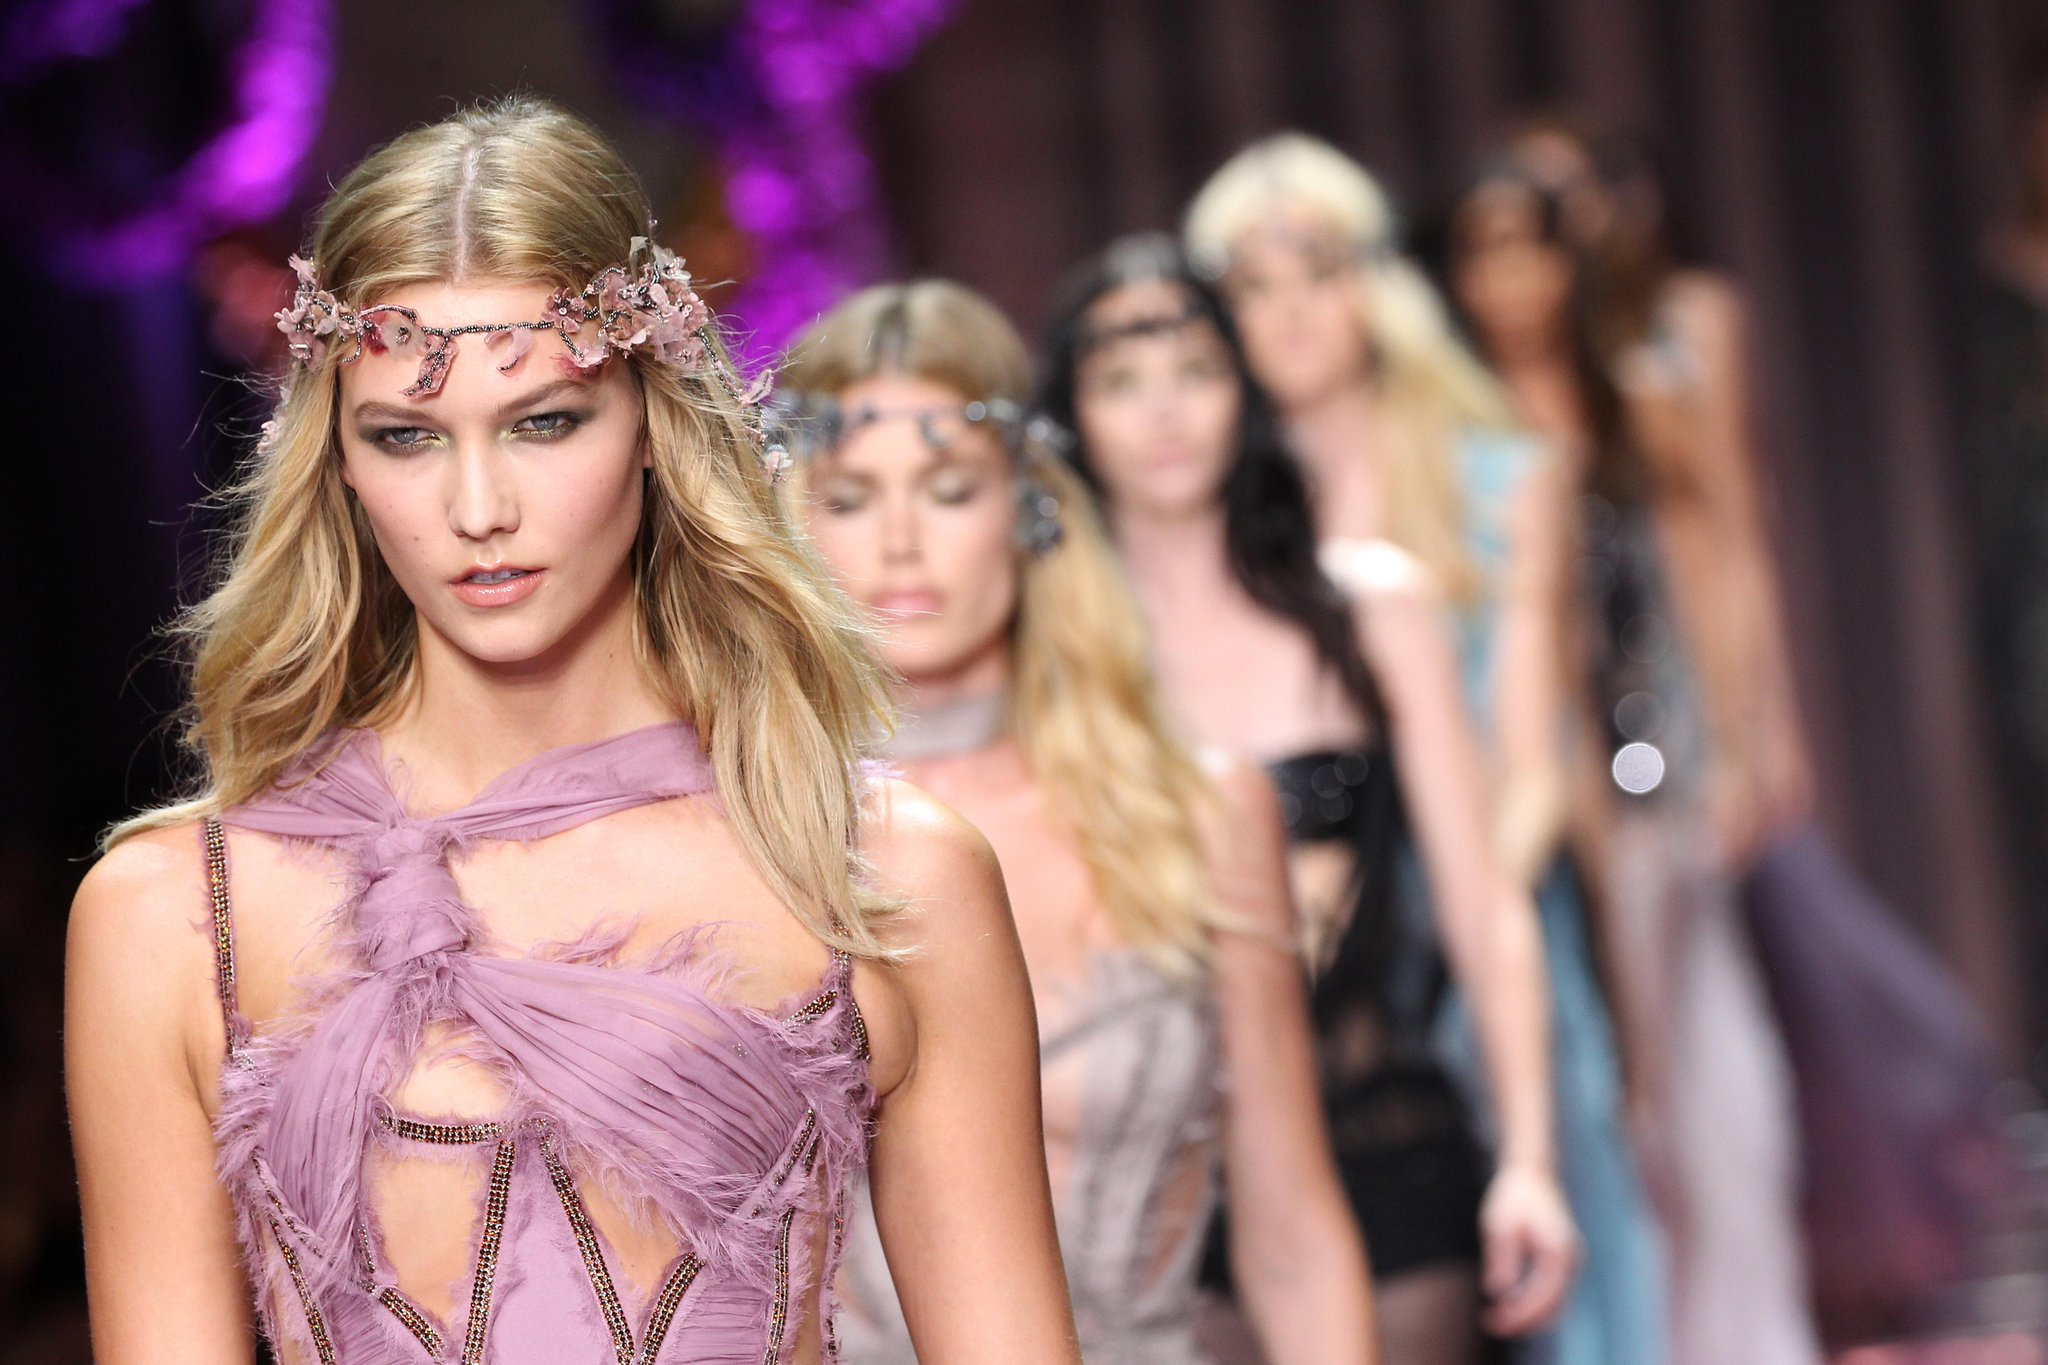 Your favorite supermodels just wore the sexiest #Versace dresses in all the land:  http://t.co/AzOLAsnfAO http://t.co/AHD9fX0w13